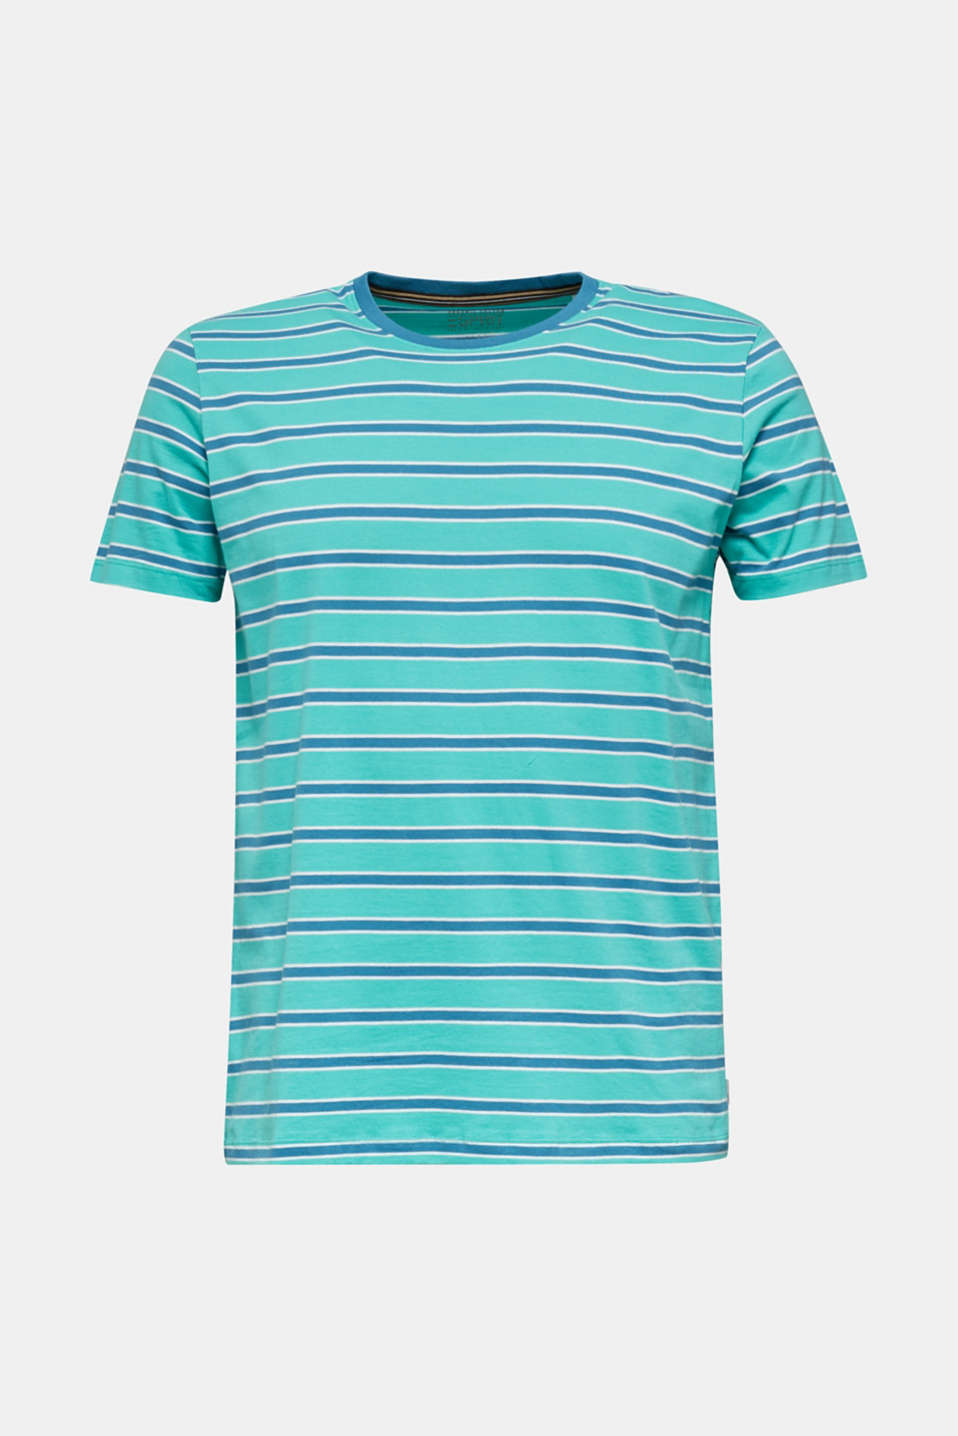 Jersey T-shirt with stripes, 100% cotton, LIGHT TURQUOISE 3, detail image number 5